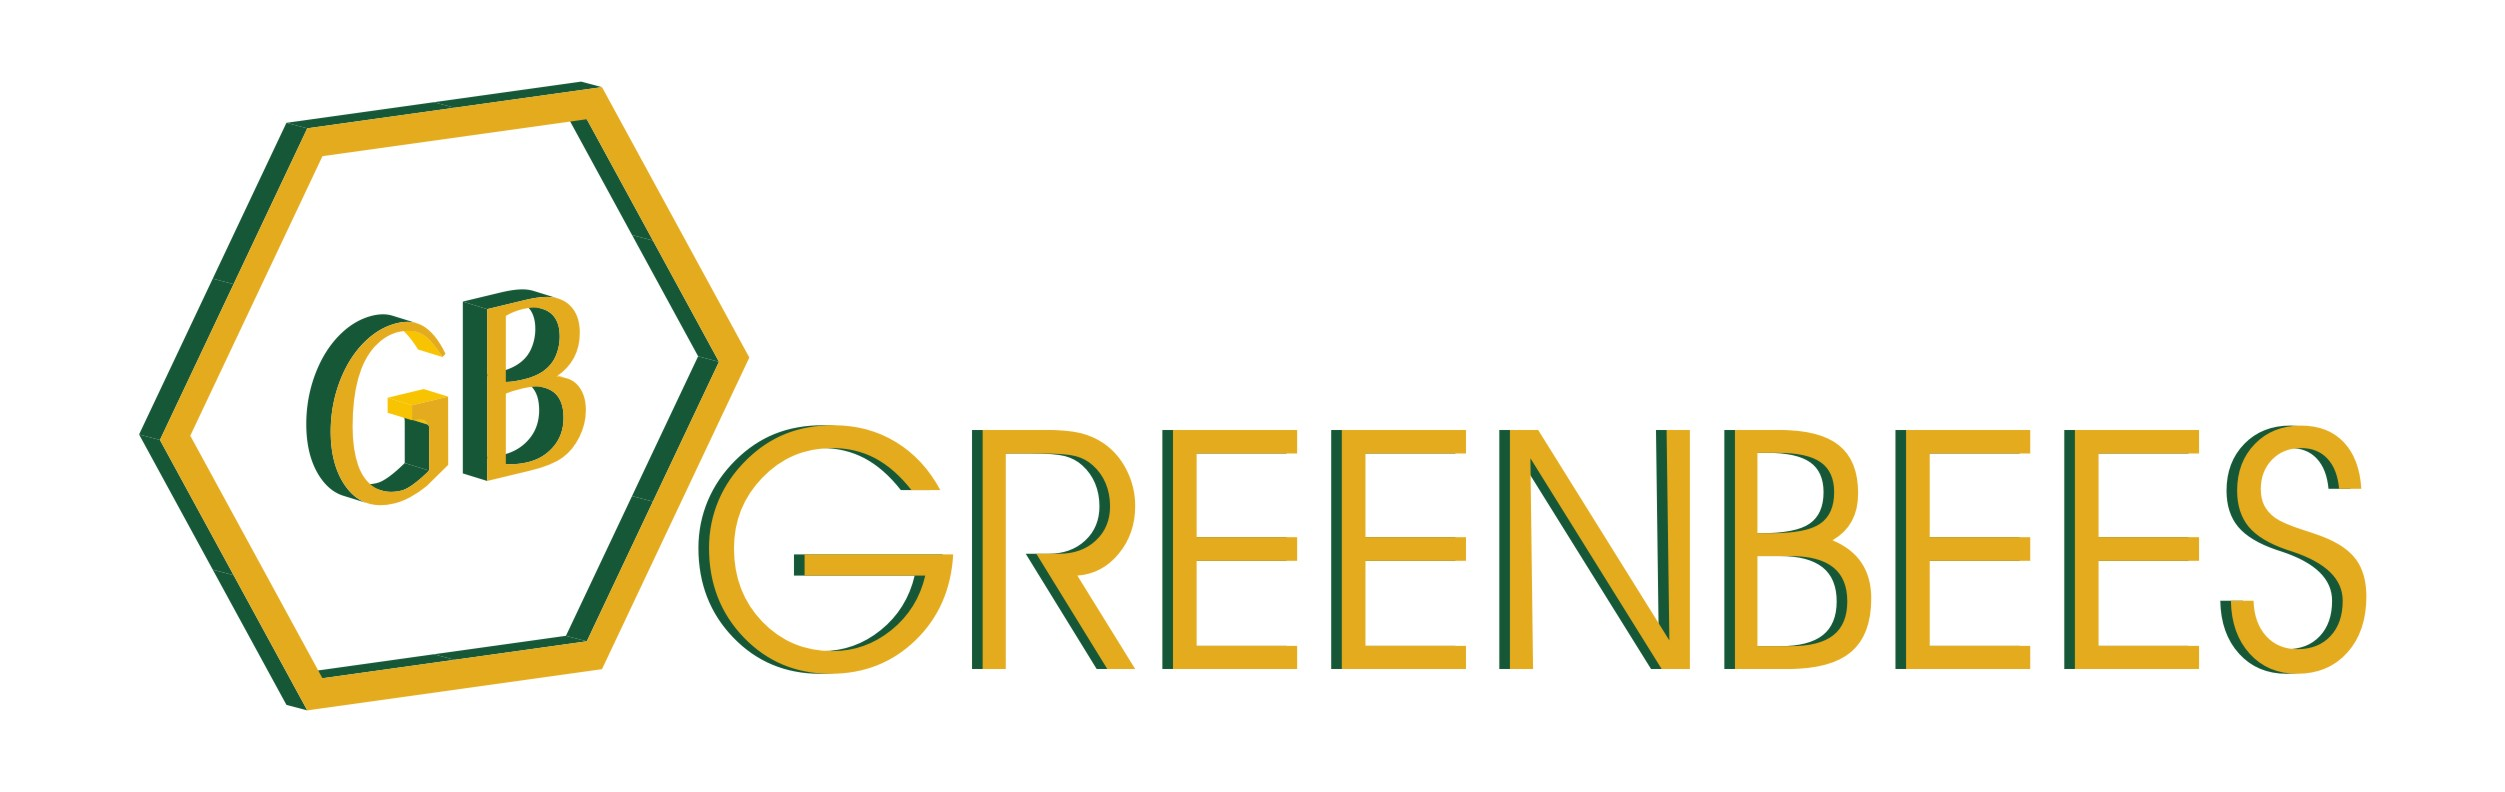 Logo Design by Crystal Desizns - Entry No. 310 in the Logo Design Contest Greenbees Logo Design.